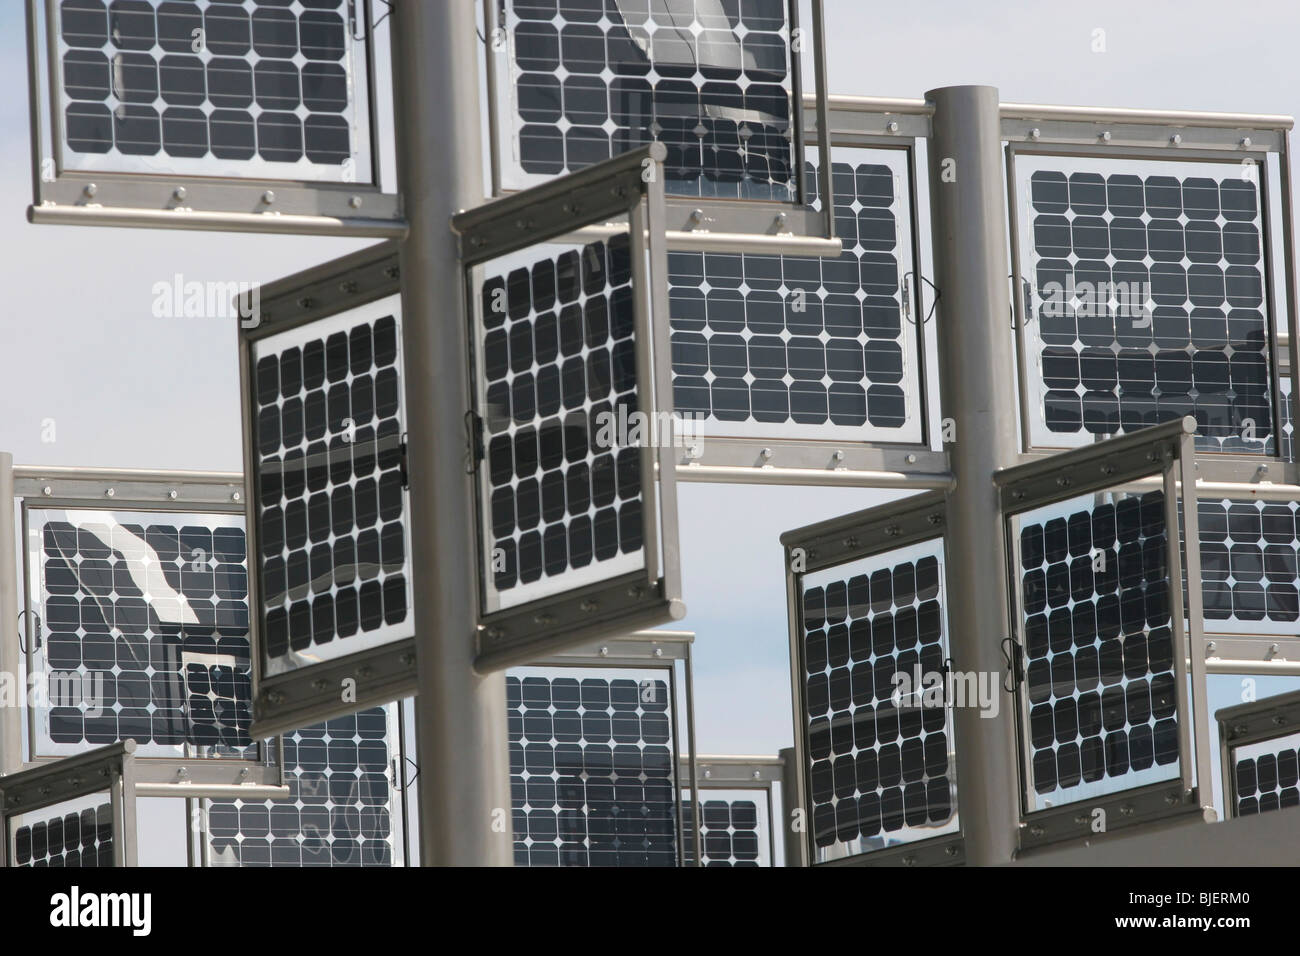 WORLD EXPO 2005, Aichi, Japan. Solar panels on the Hitachi building. Stock Photo